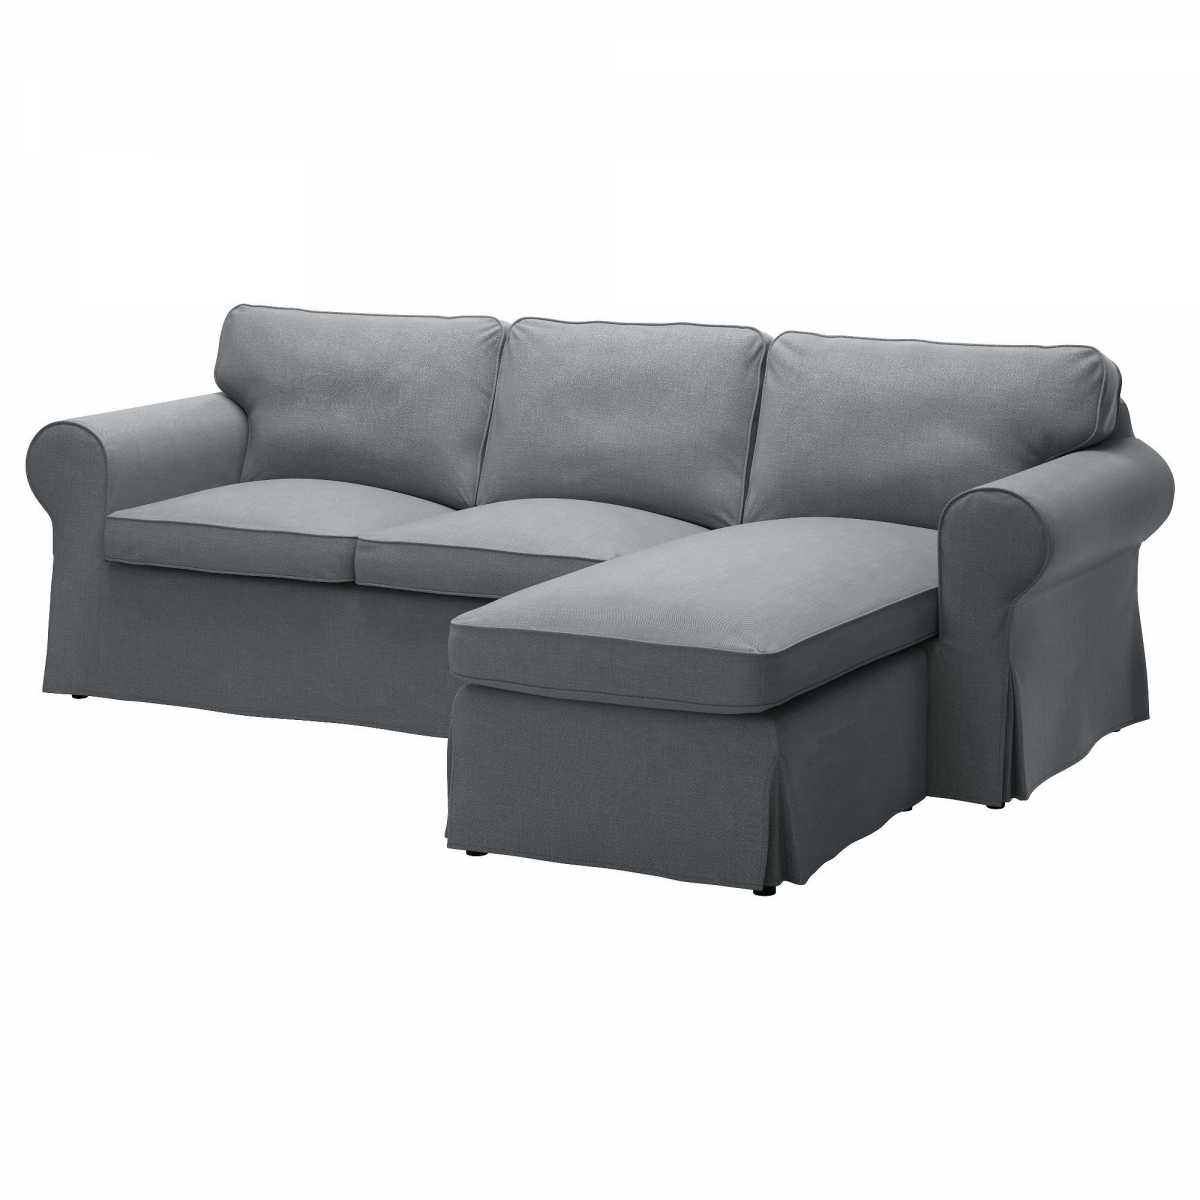 Famous Loveseats With Chaise Throughout Loveseat : Chaise Loveseat New Small Loveseat With Chaise Lounge (View 5 of 15)